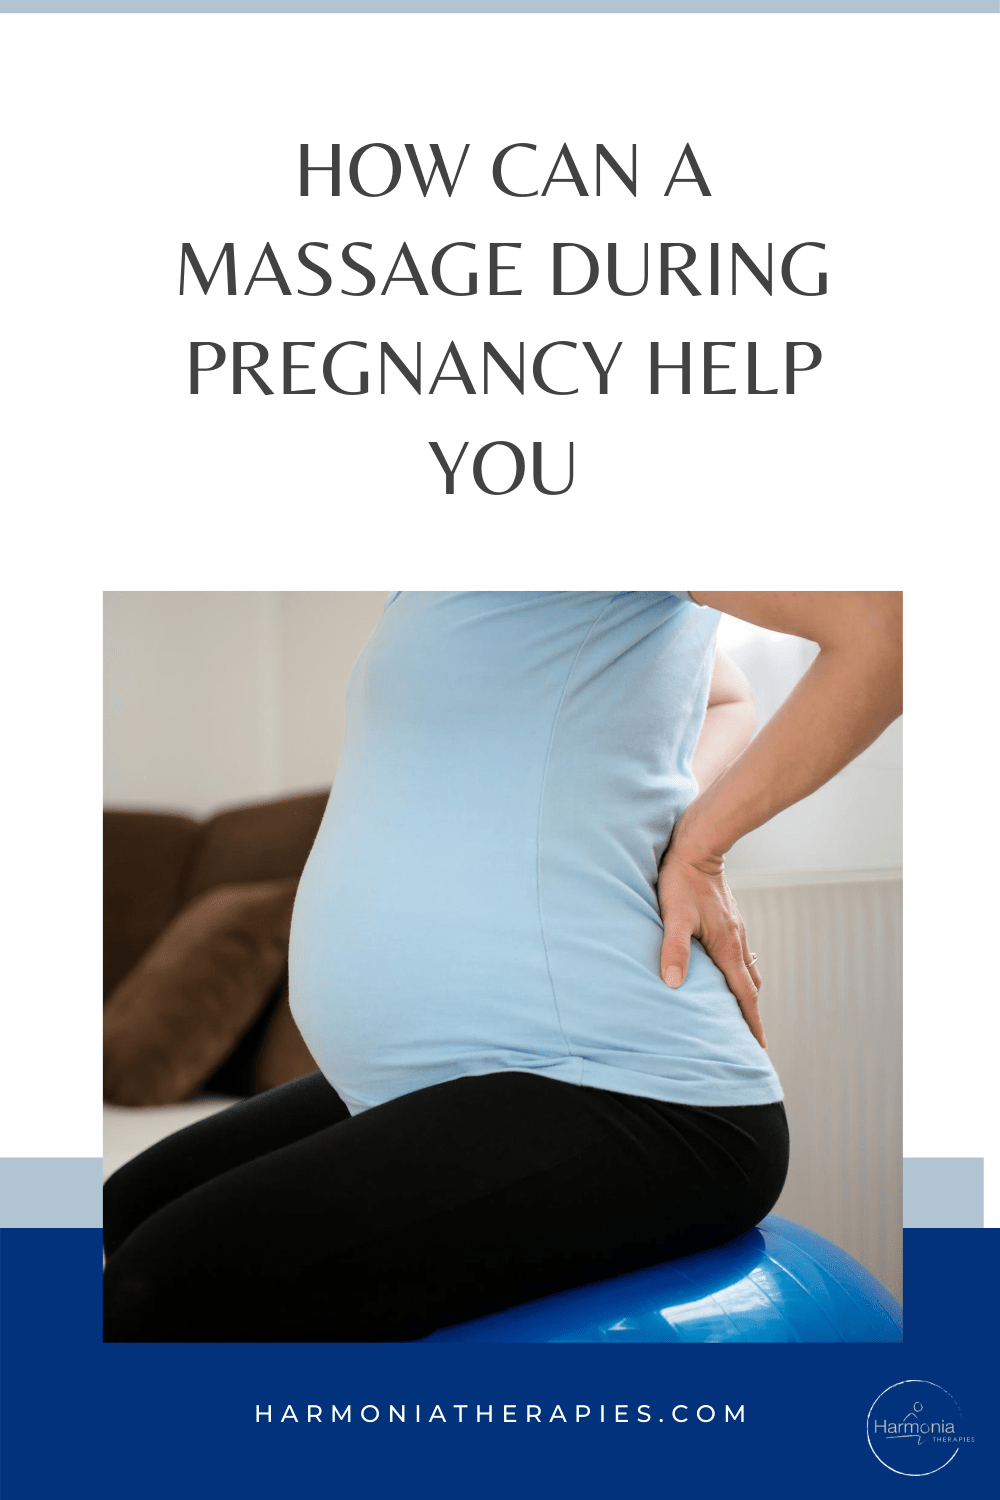 What Is Pregnancy Massage?